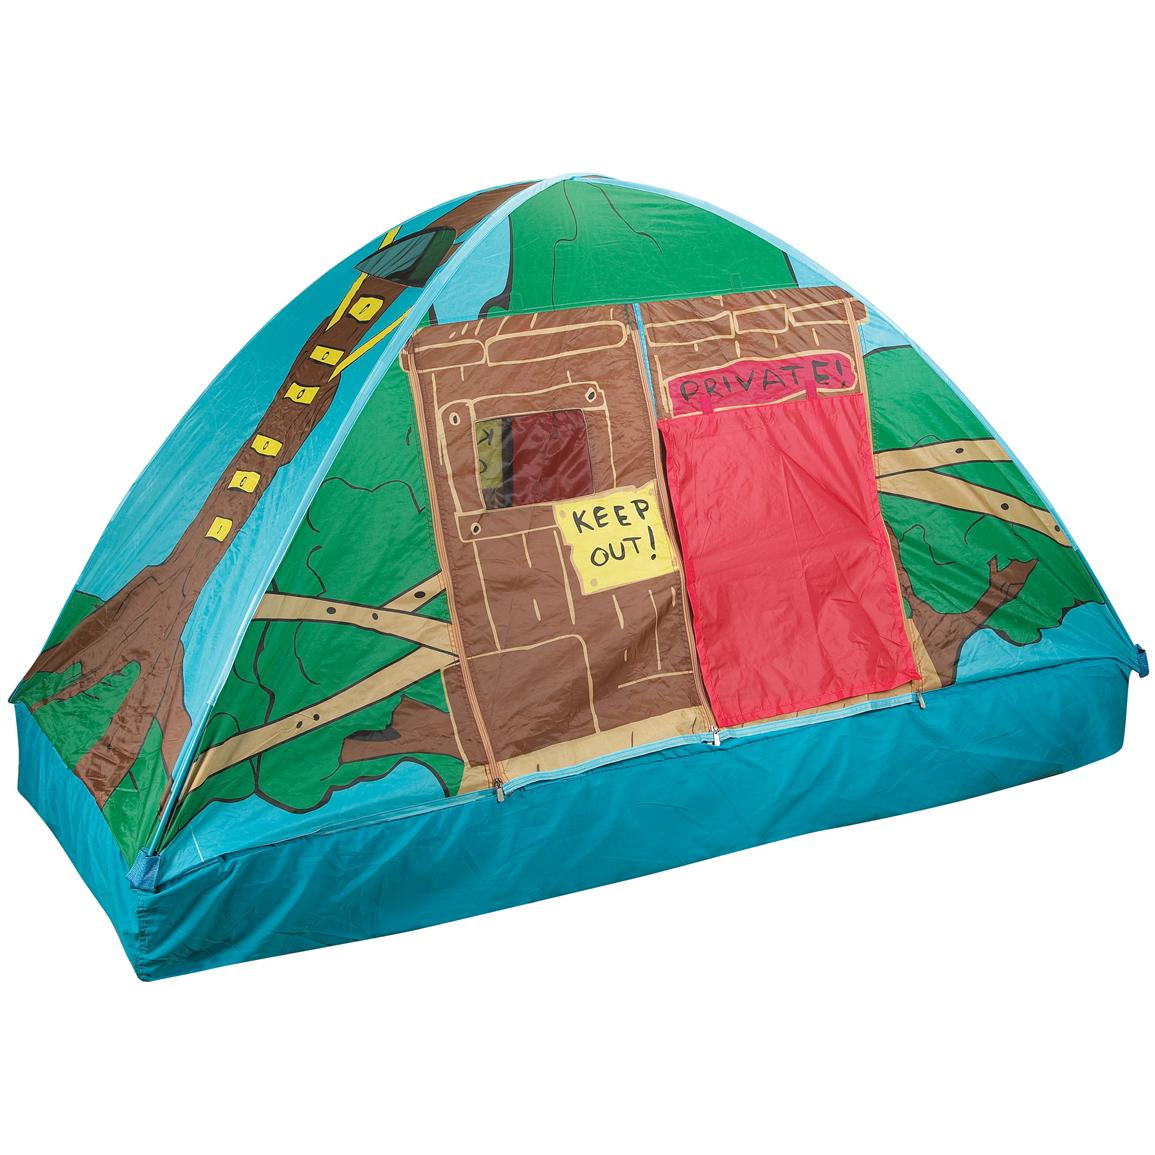 Pacific Play Tents® Treehouse Bed Tent